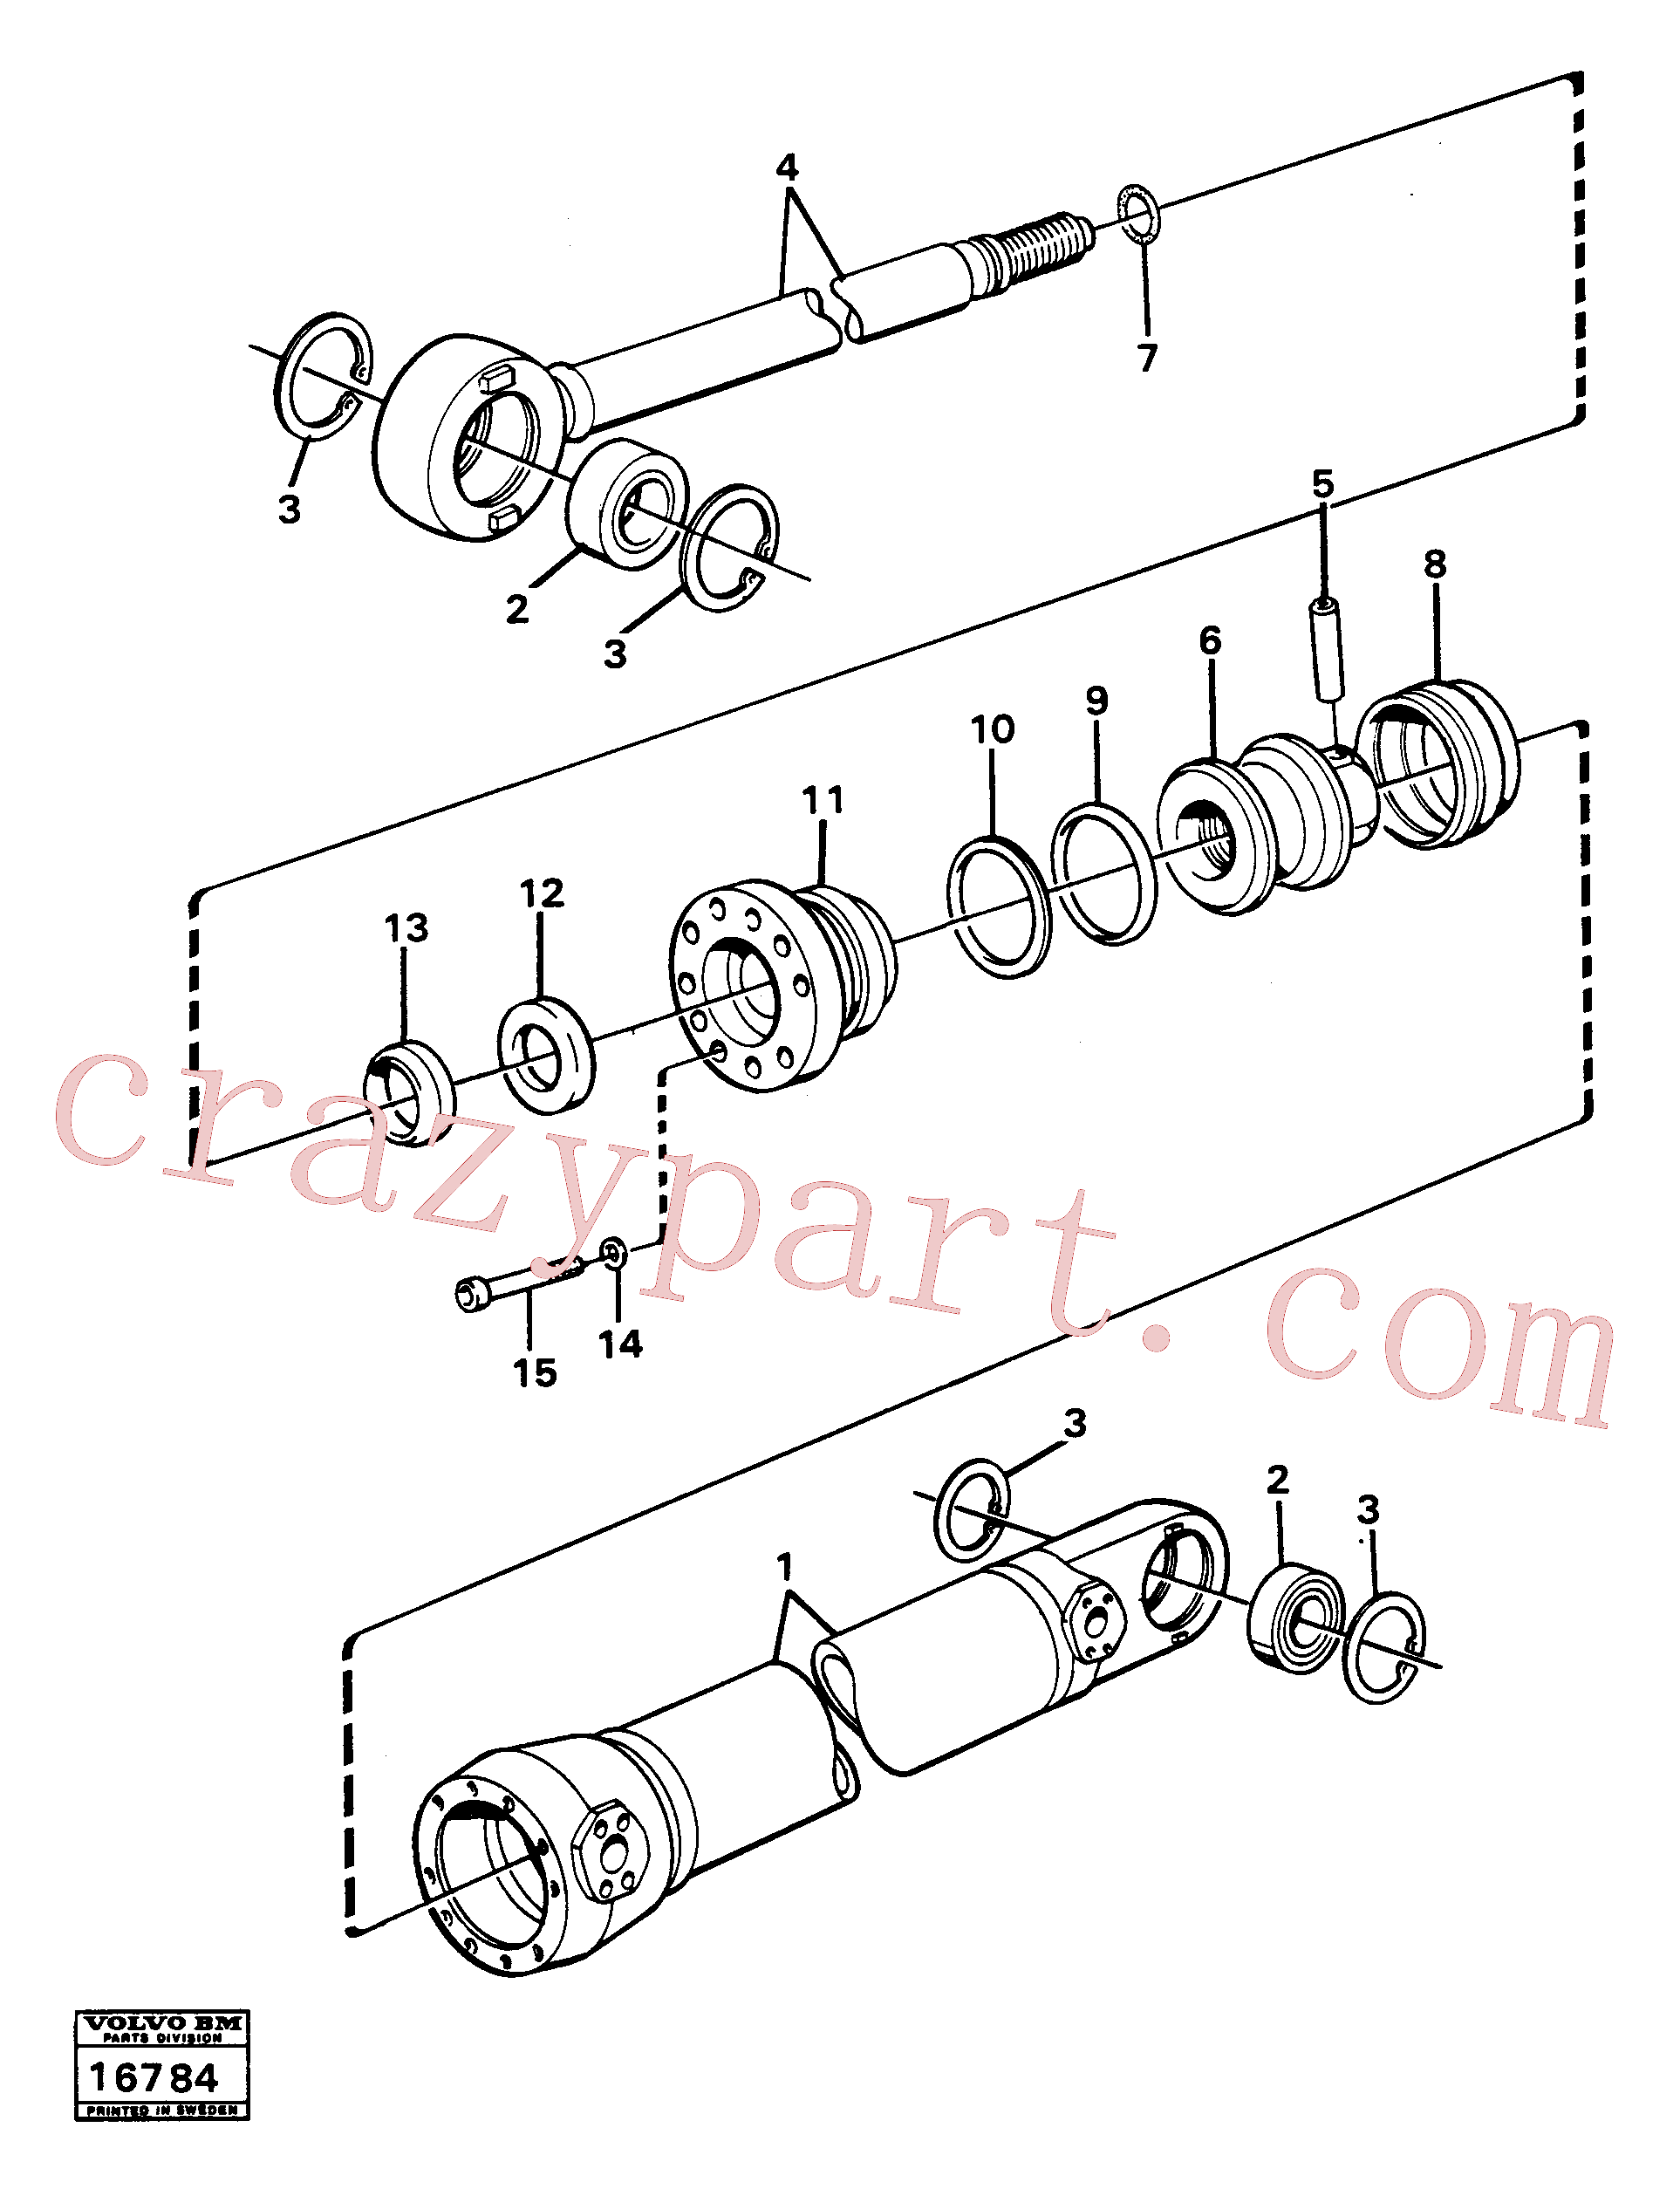 CH18340 for Volvo Steering cylinder, Hydraulic cylinder, Steering cylinder tillv nr 2601-, Hydraulic cylinder tillv nr 4526-(16784 assembly)